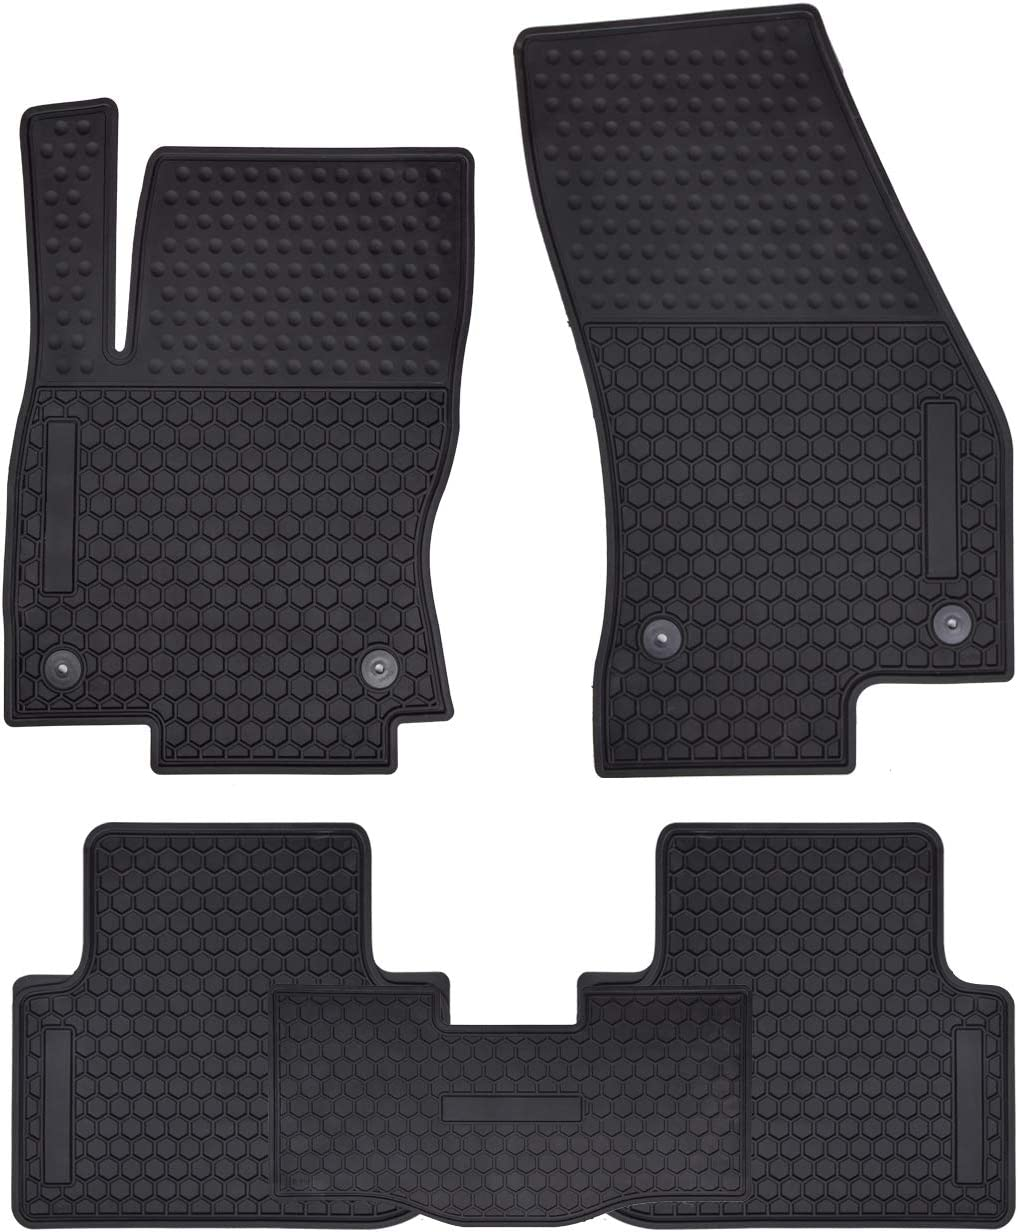 Megiteller Car Floor Mats Custom Fit for Volkswagen Tiguan 2010 2011 2012 2013 2014 2015 2016 2017 2018 2019 Odorless Washable Heavy Duty Rubber All Weather Floor Liners Front and Rear Row Set